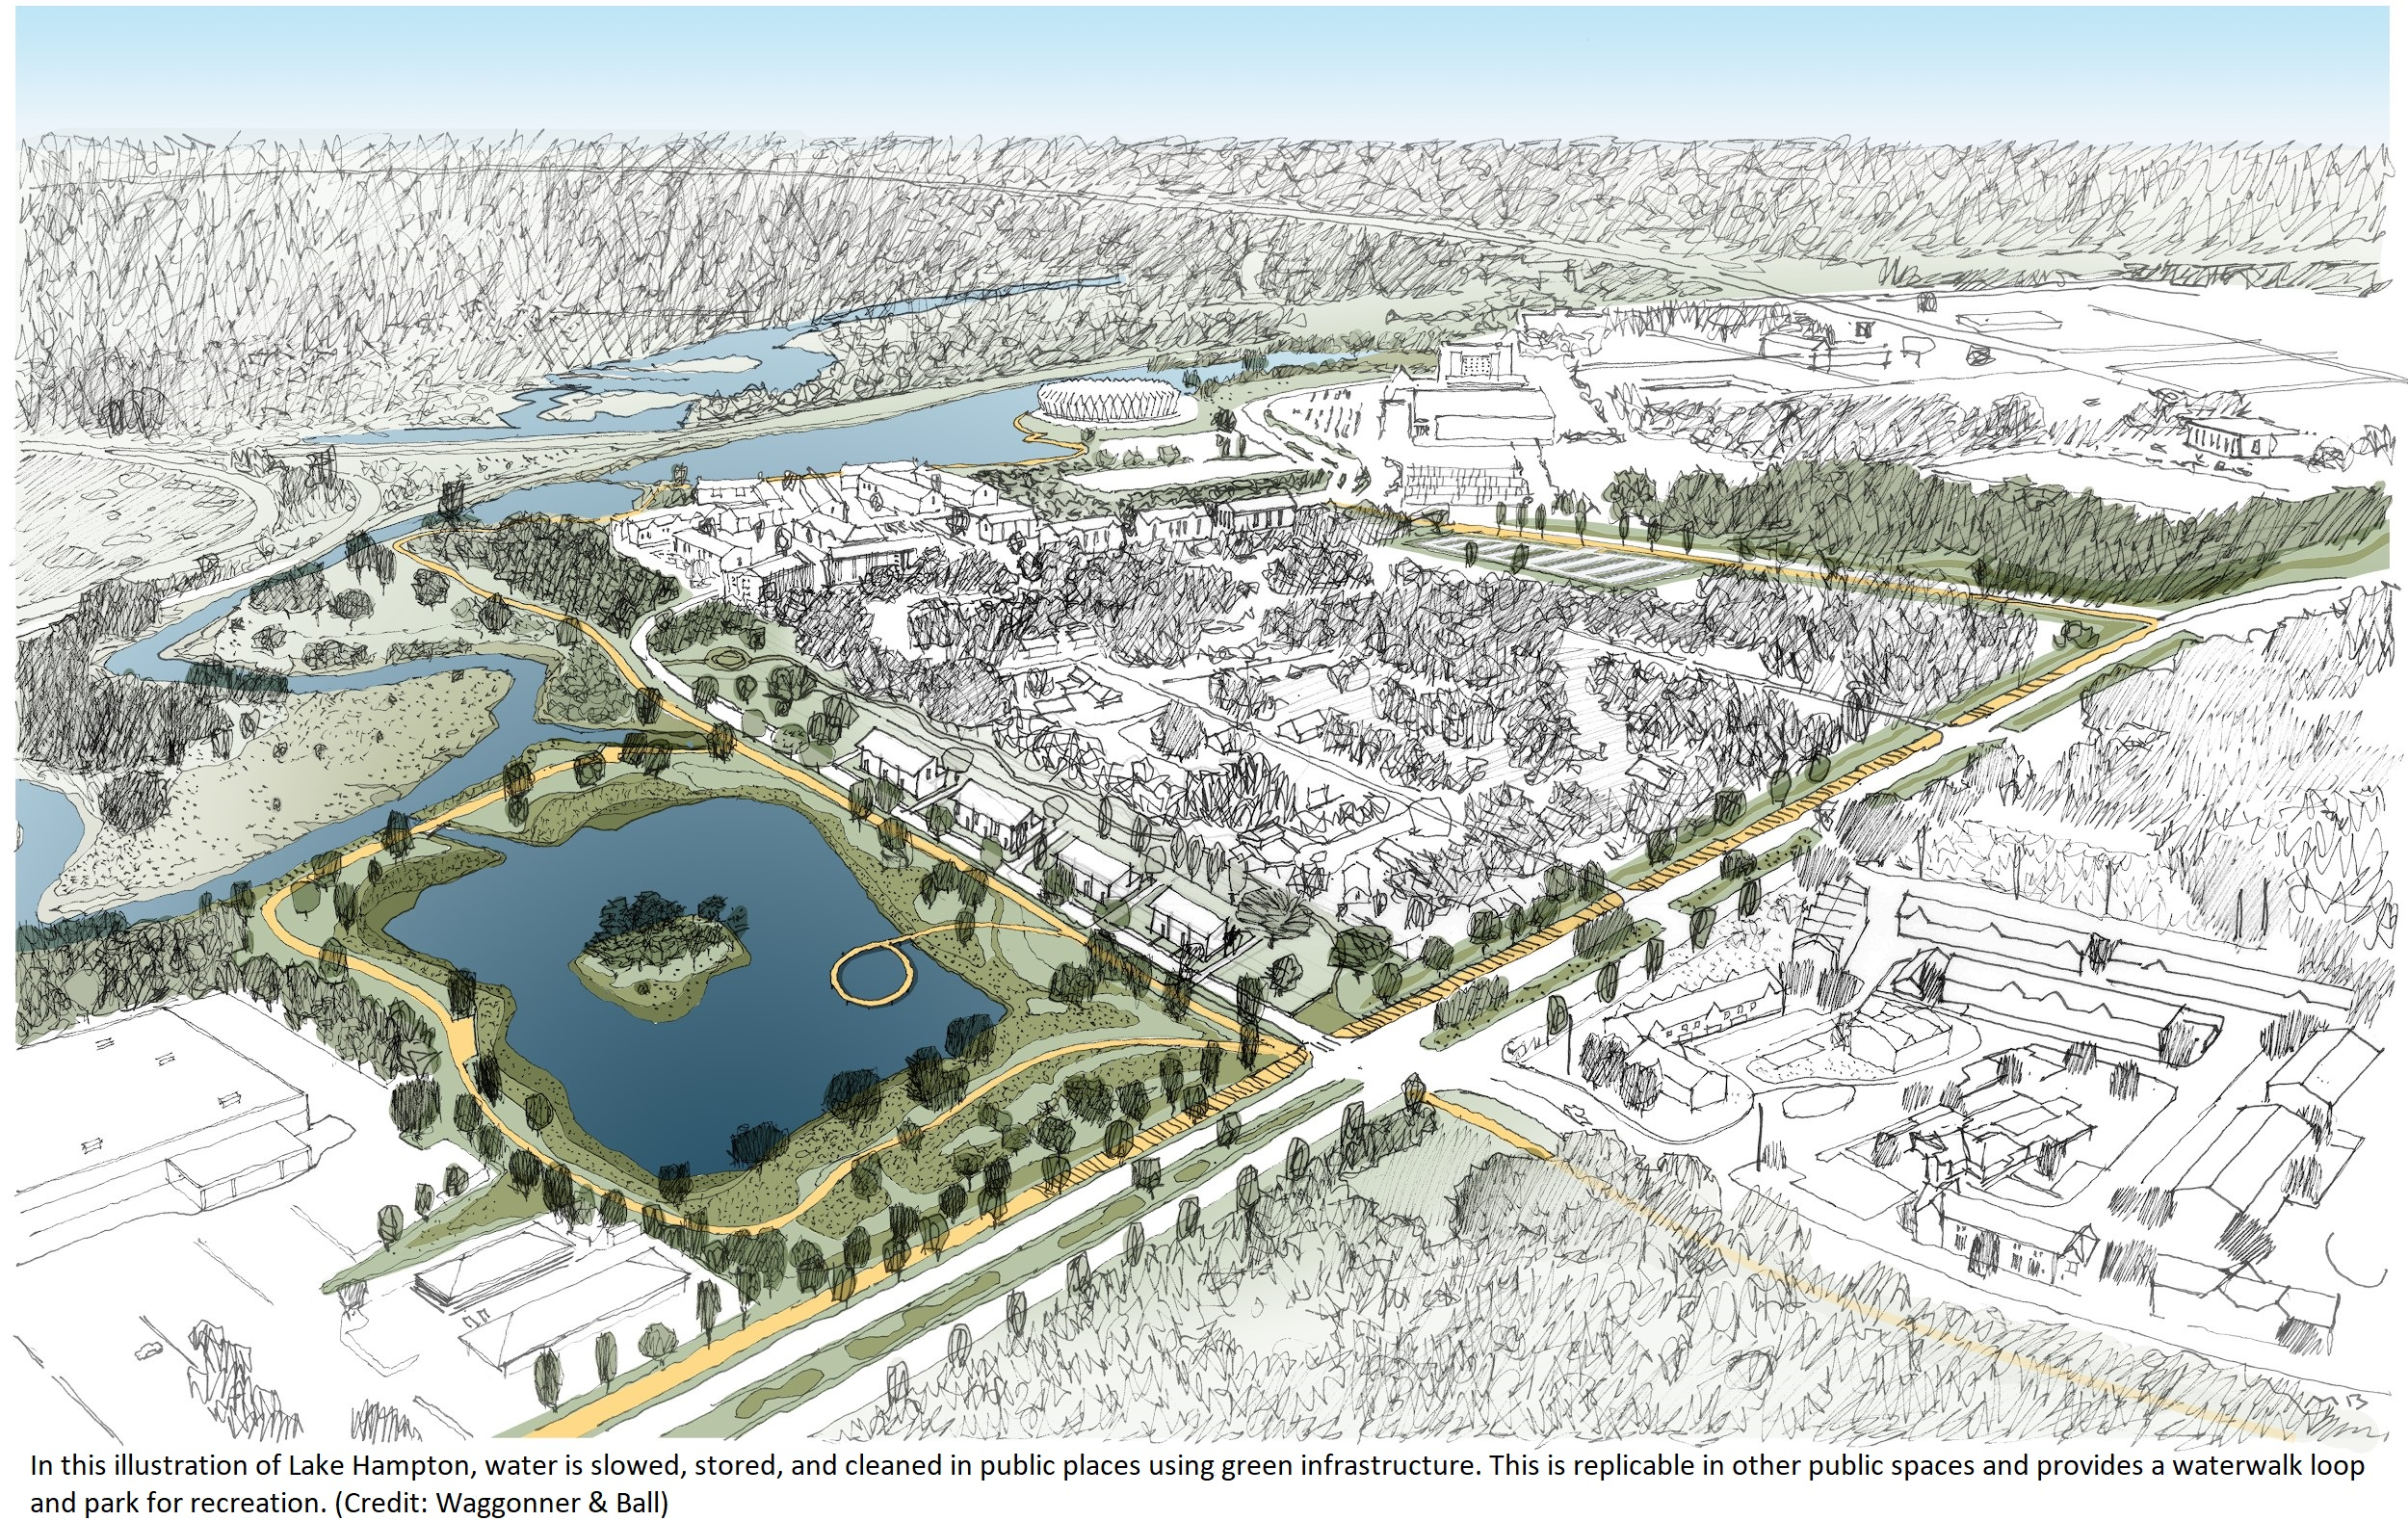 Architectural illustration of aerial view of a community with a park. The park has a large body of water with an island in the center.